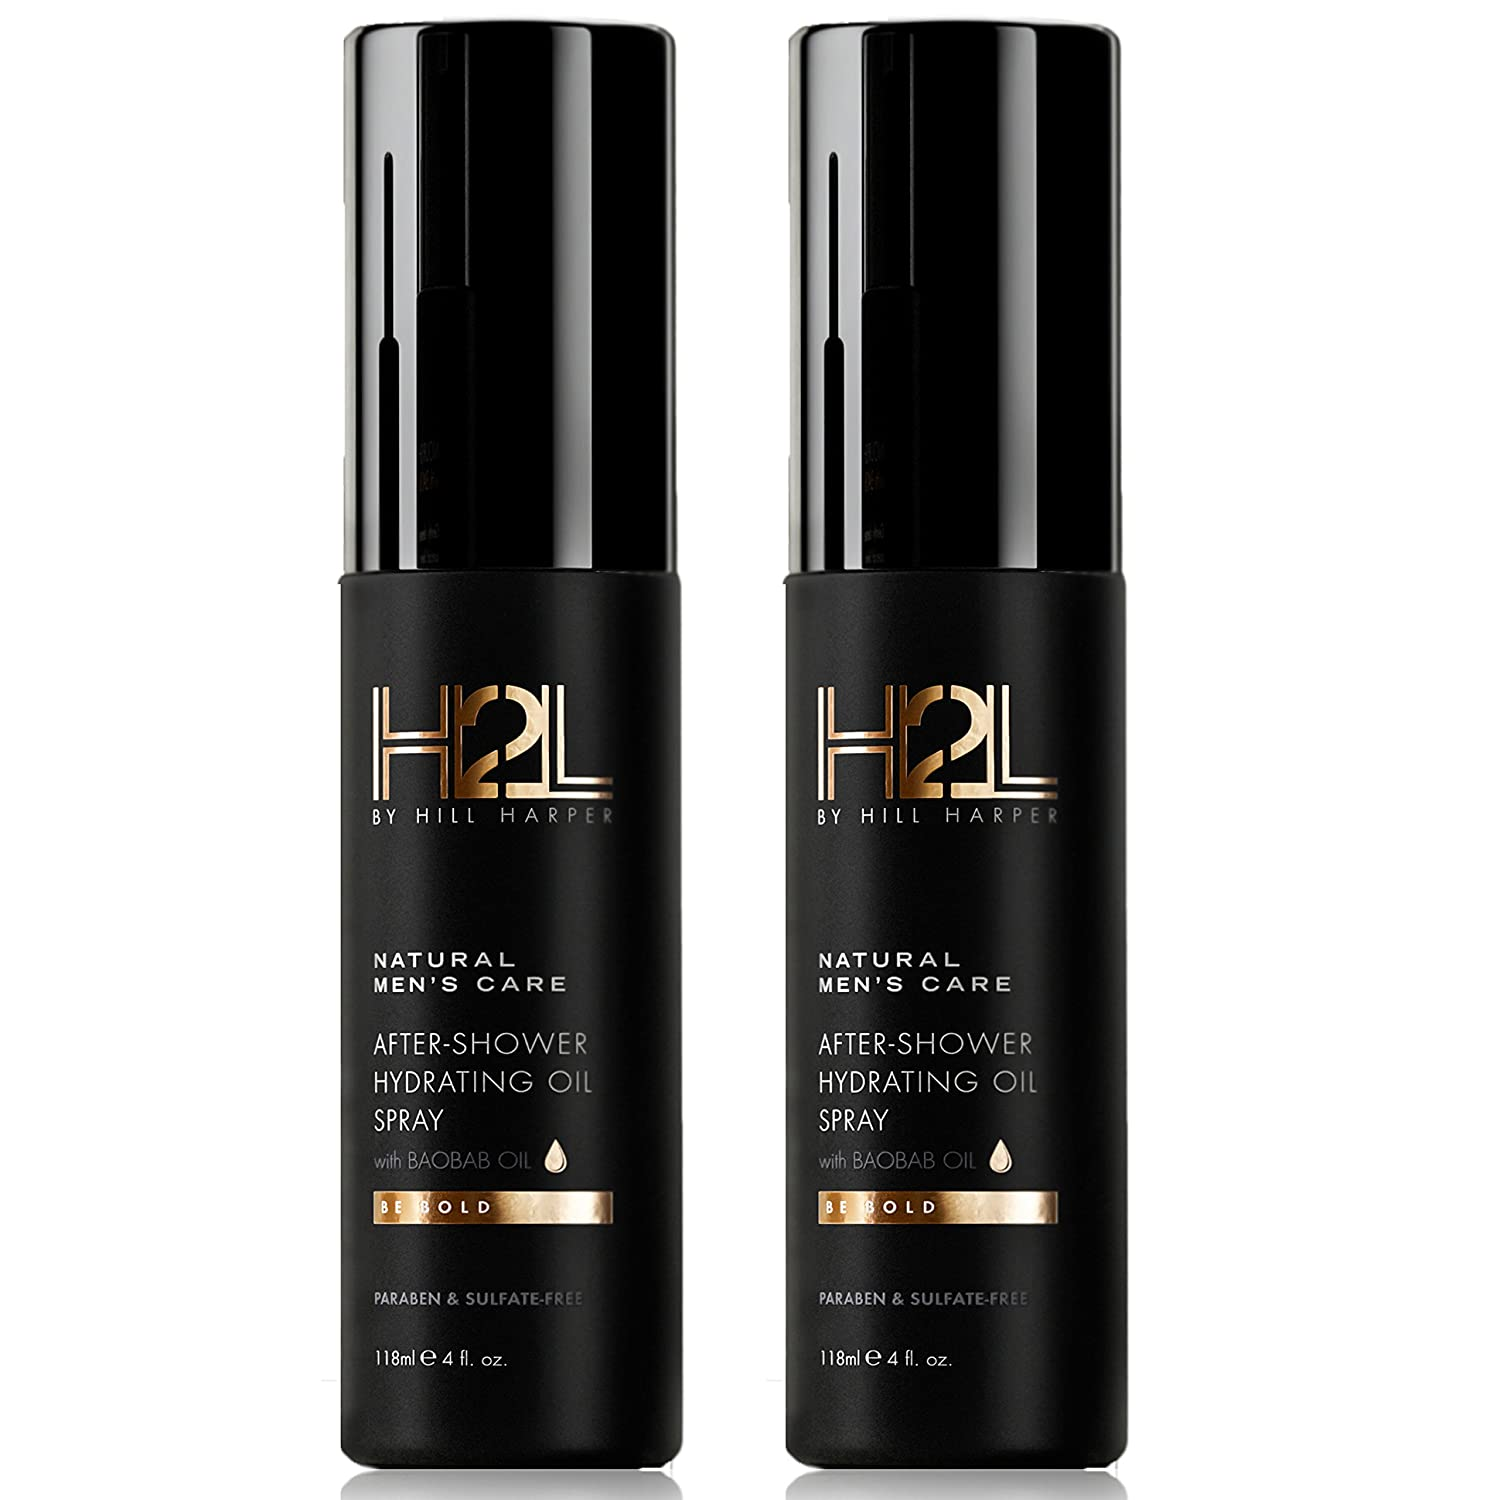 H2L Premium Natural After-Shower Hydrating Body Oil - With Baobab, Jojoba, Almond Oil. Formulated to Retain Moisture, Rejuvenate & Hydrate Skin. For Men By Hill Harper (2 Bottles)